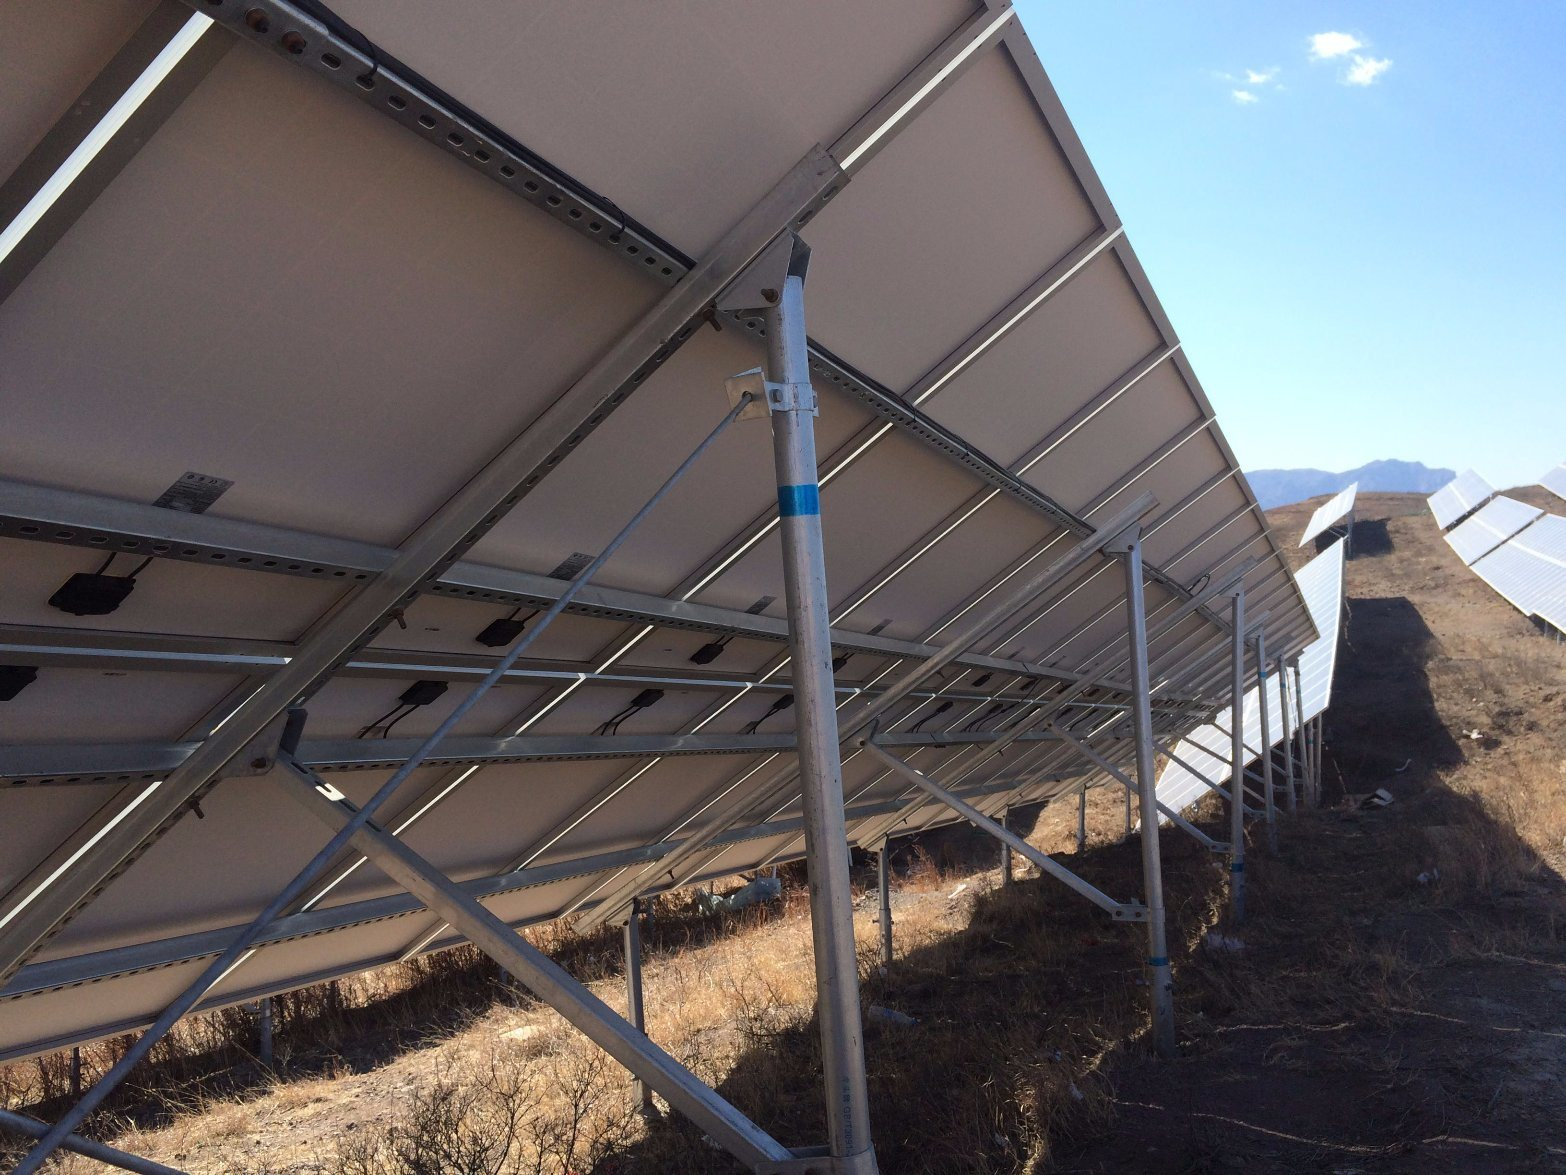 Ground Lighting Solar Braket System